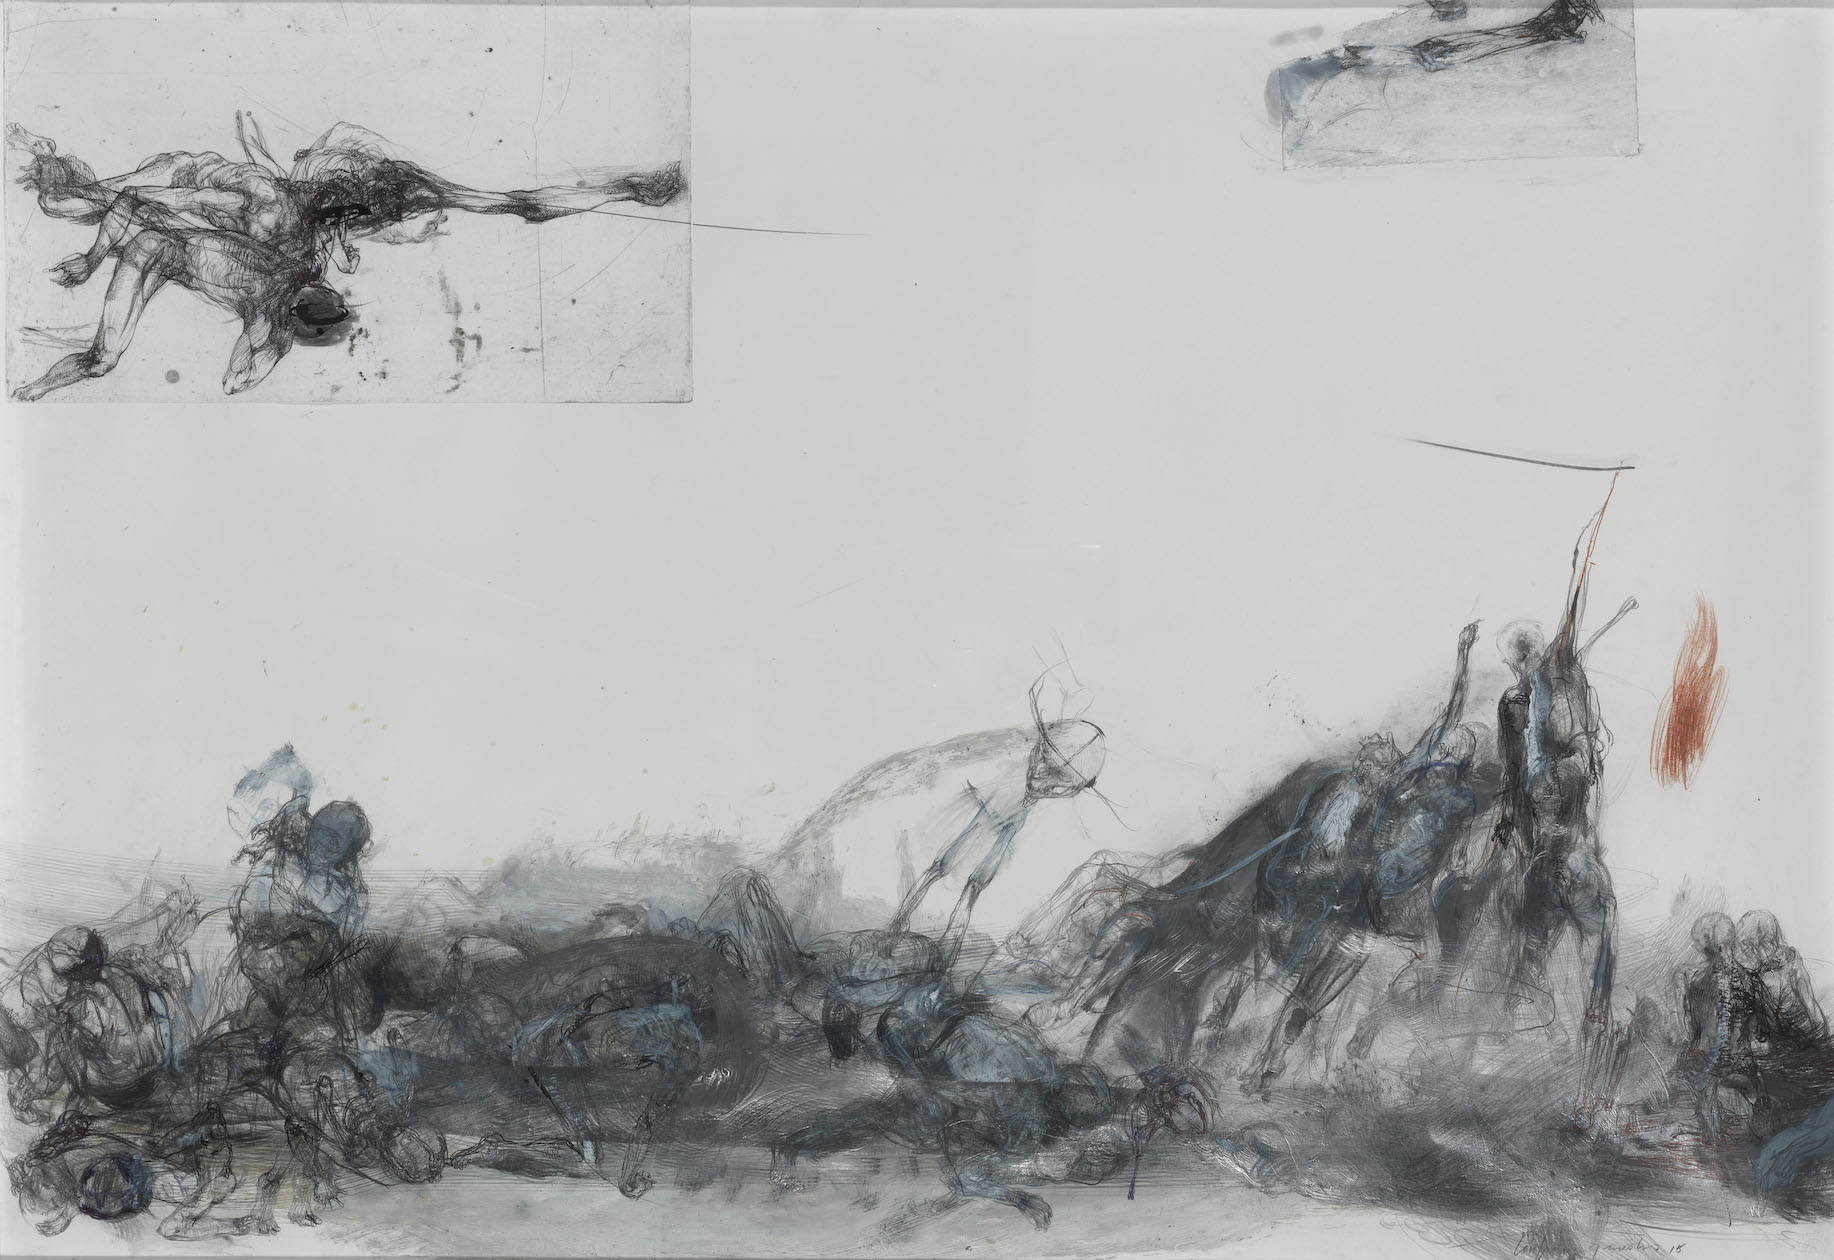 Lanfranco Quadrio, untitled, 2015, acrylic, oil, pastel, graphite and pen on canvas, 70x100cm, courtesy of the artist and Rosenfeld Porcini.